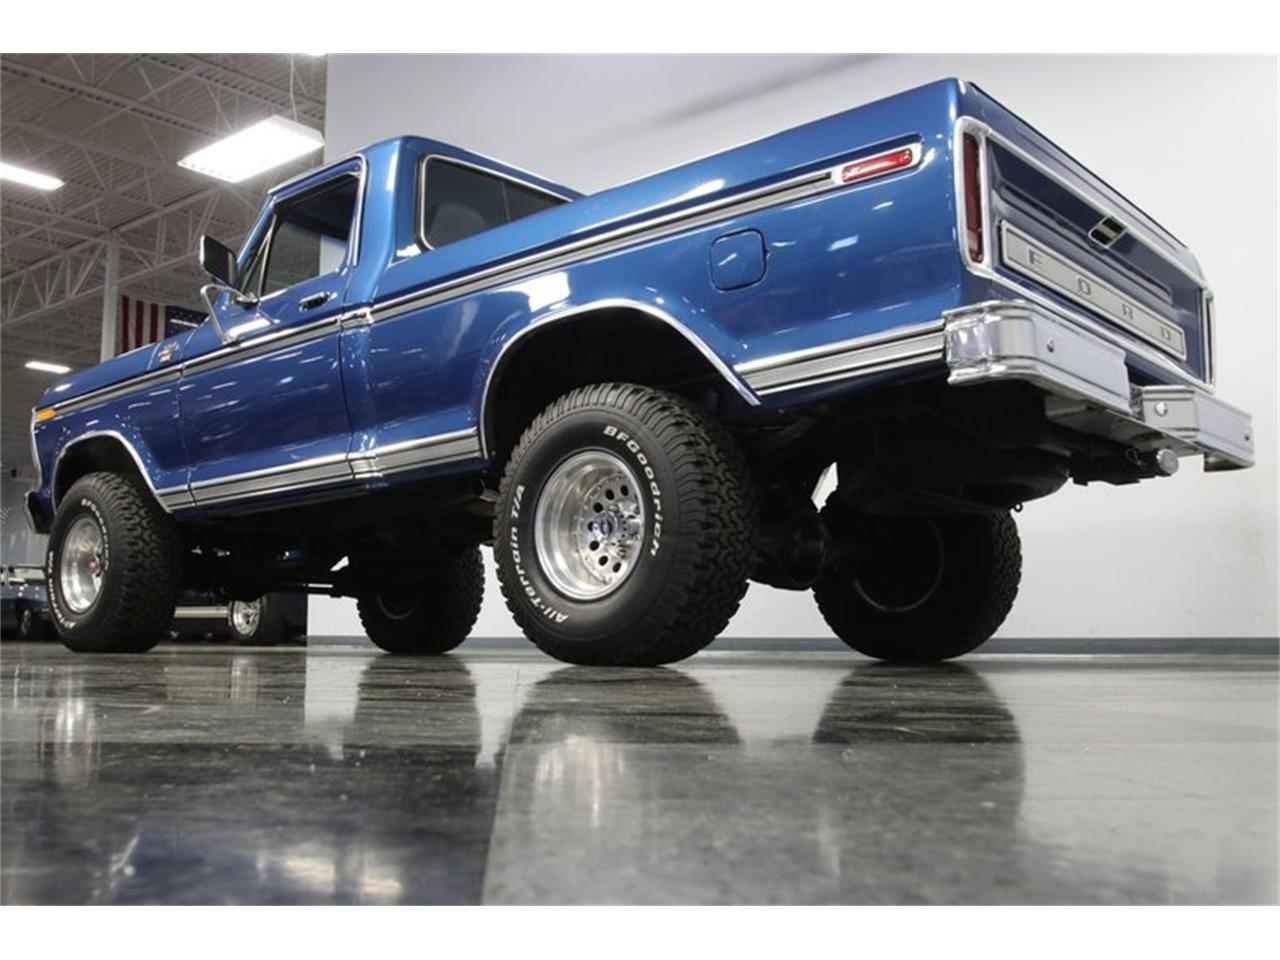 Large Picture of '79 Ford F150 located in North Carolina - $33,995.00 Offered by Streetside Classics - Charlotte - PW7U